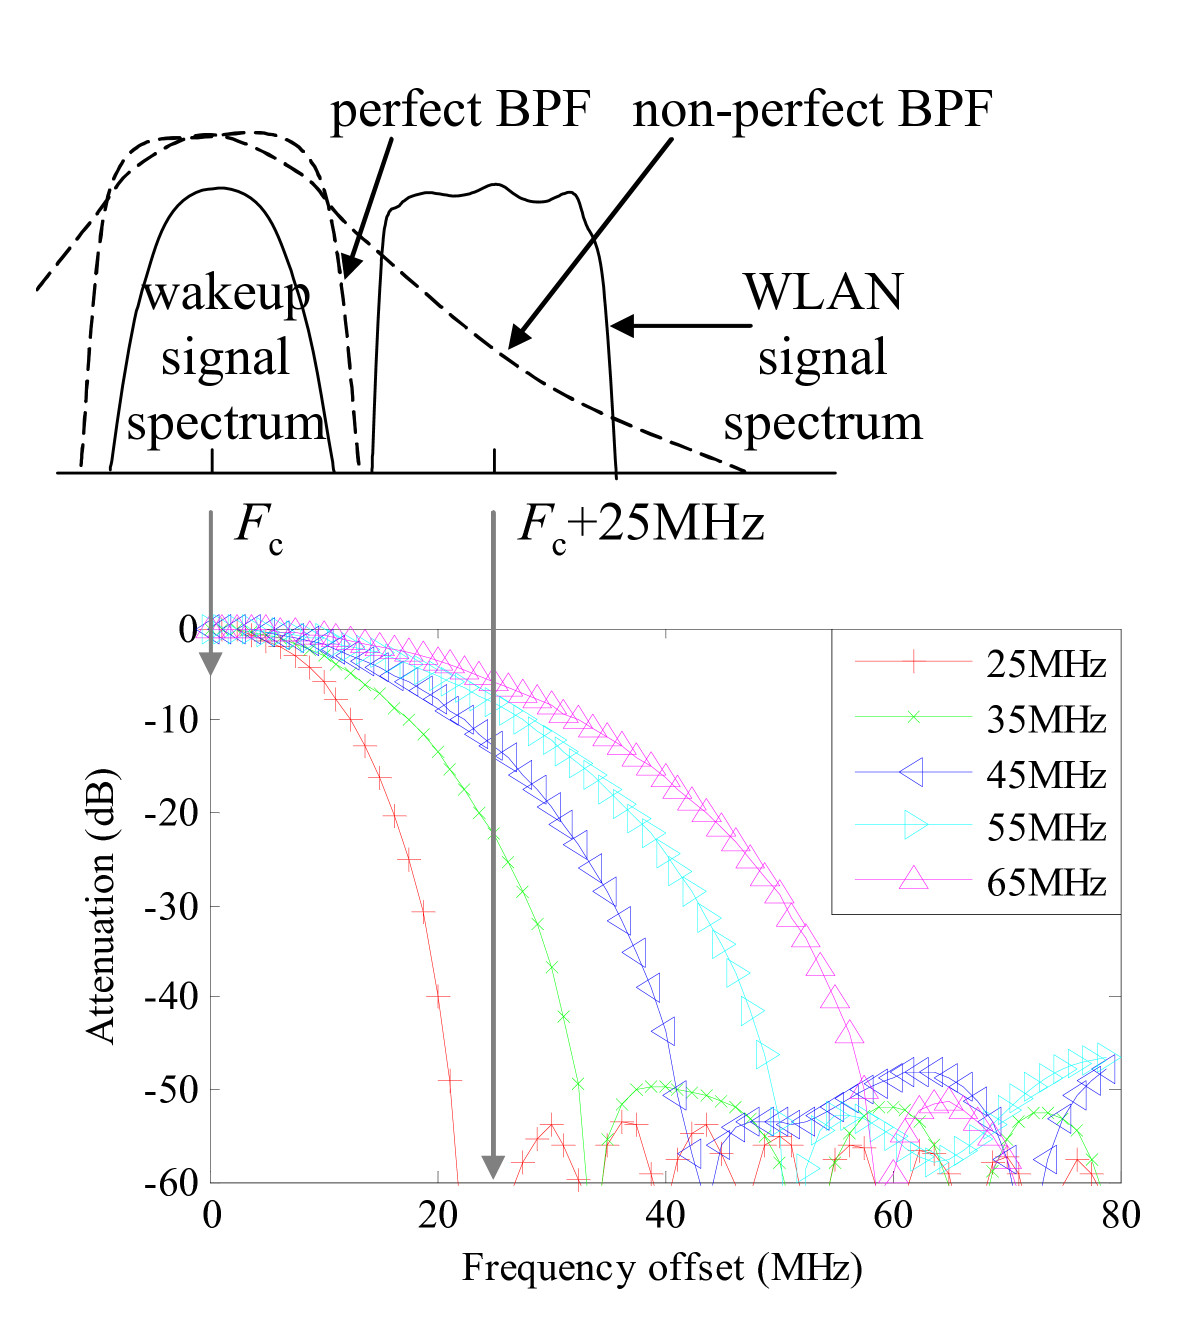 http://static-content.springer.com/image/art%3A10.1186%2F1687-1499-2012-42/MediaObjects/13638_2011_Article_254_Fig5_HTML.jpg